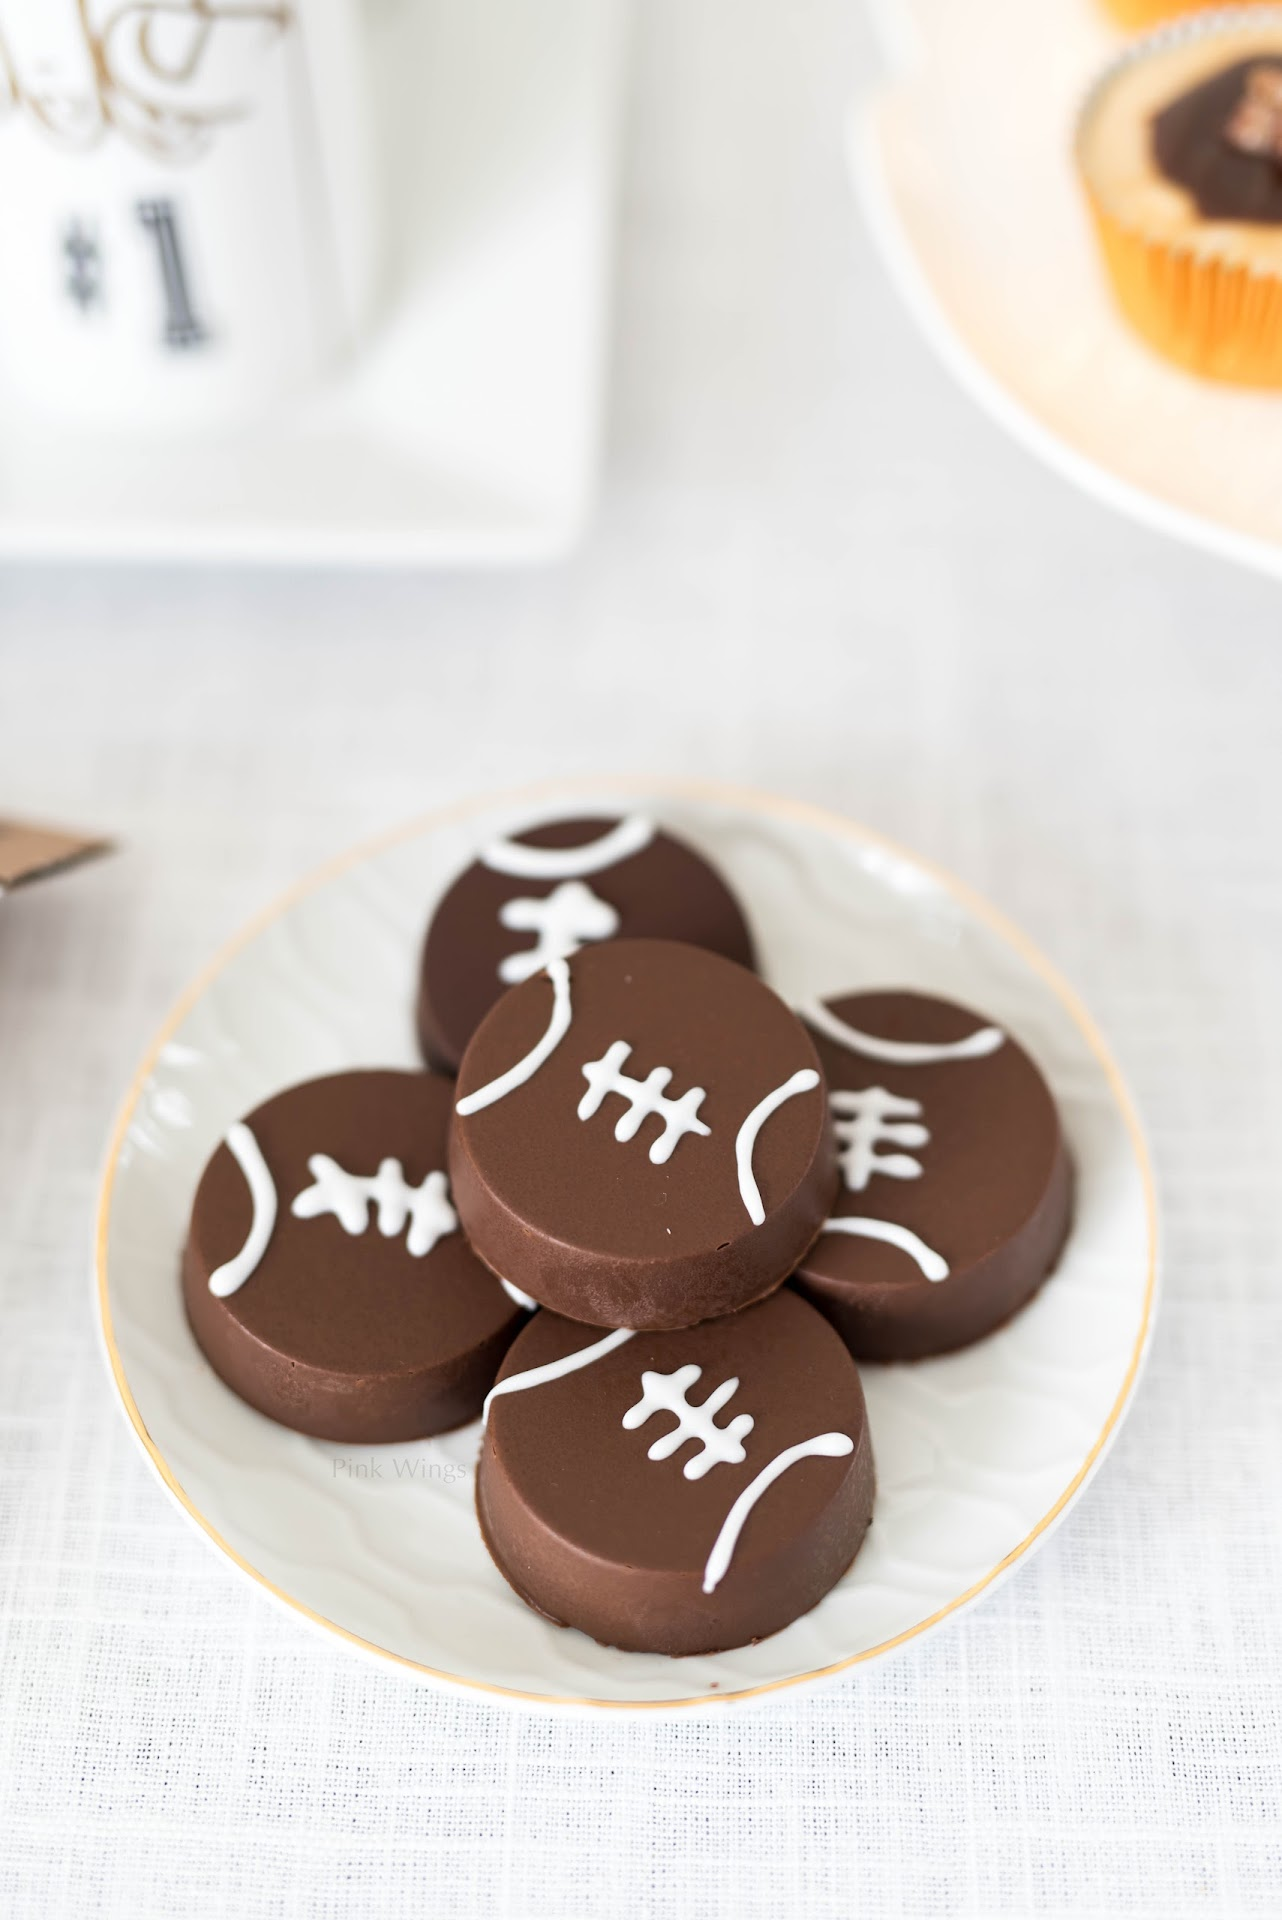 football snacks, football party food ideas, kid treats, chocolate covered oreos, football cookies, mint chocolate, tailgating, birthday party, sports party